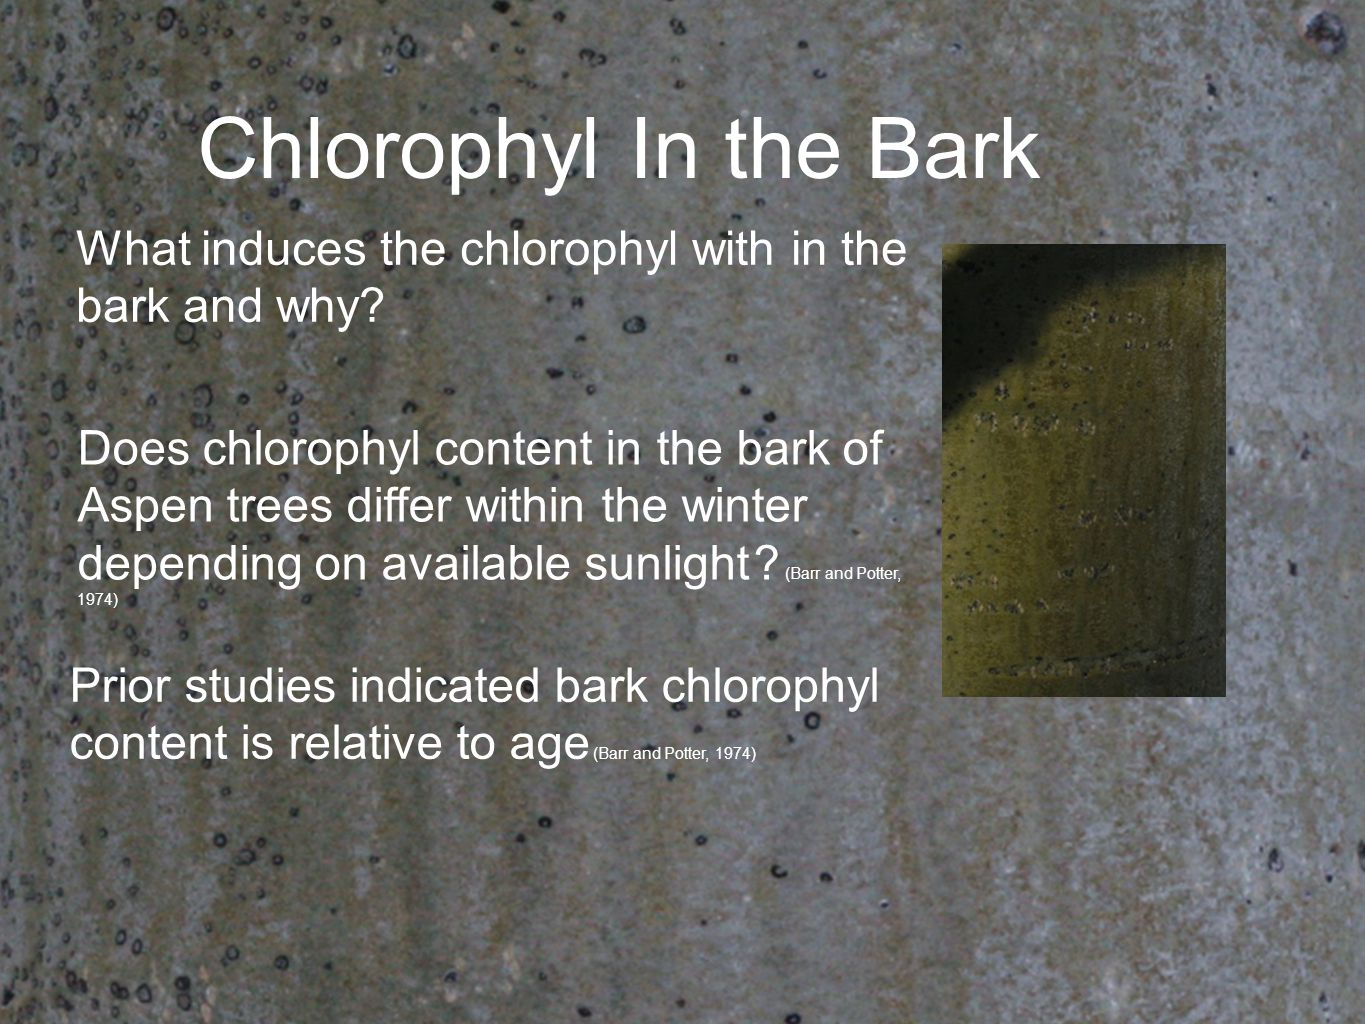 Does chlorophyl content in the bark of Aspen trees differ within the winter depending on available sunlight ? (Barr and Potter, 1974) What induces the